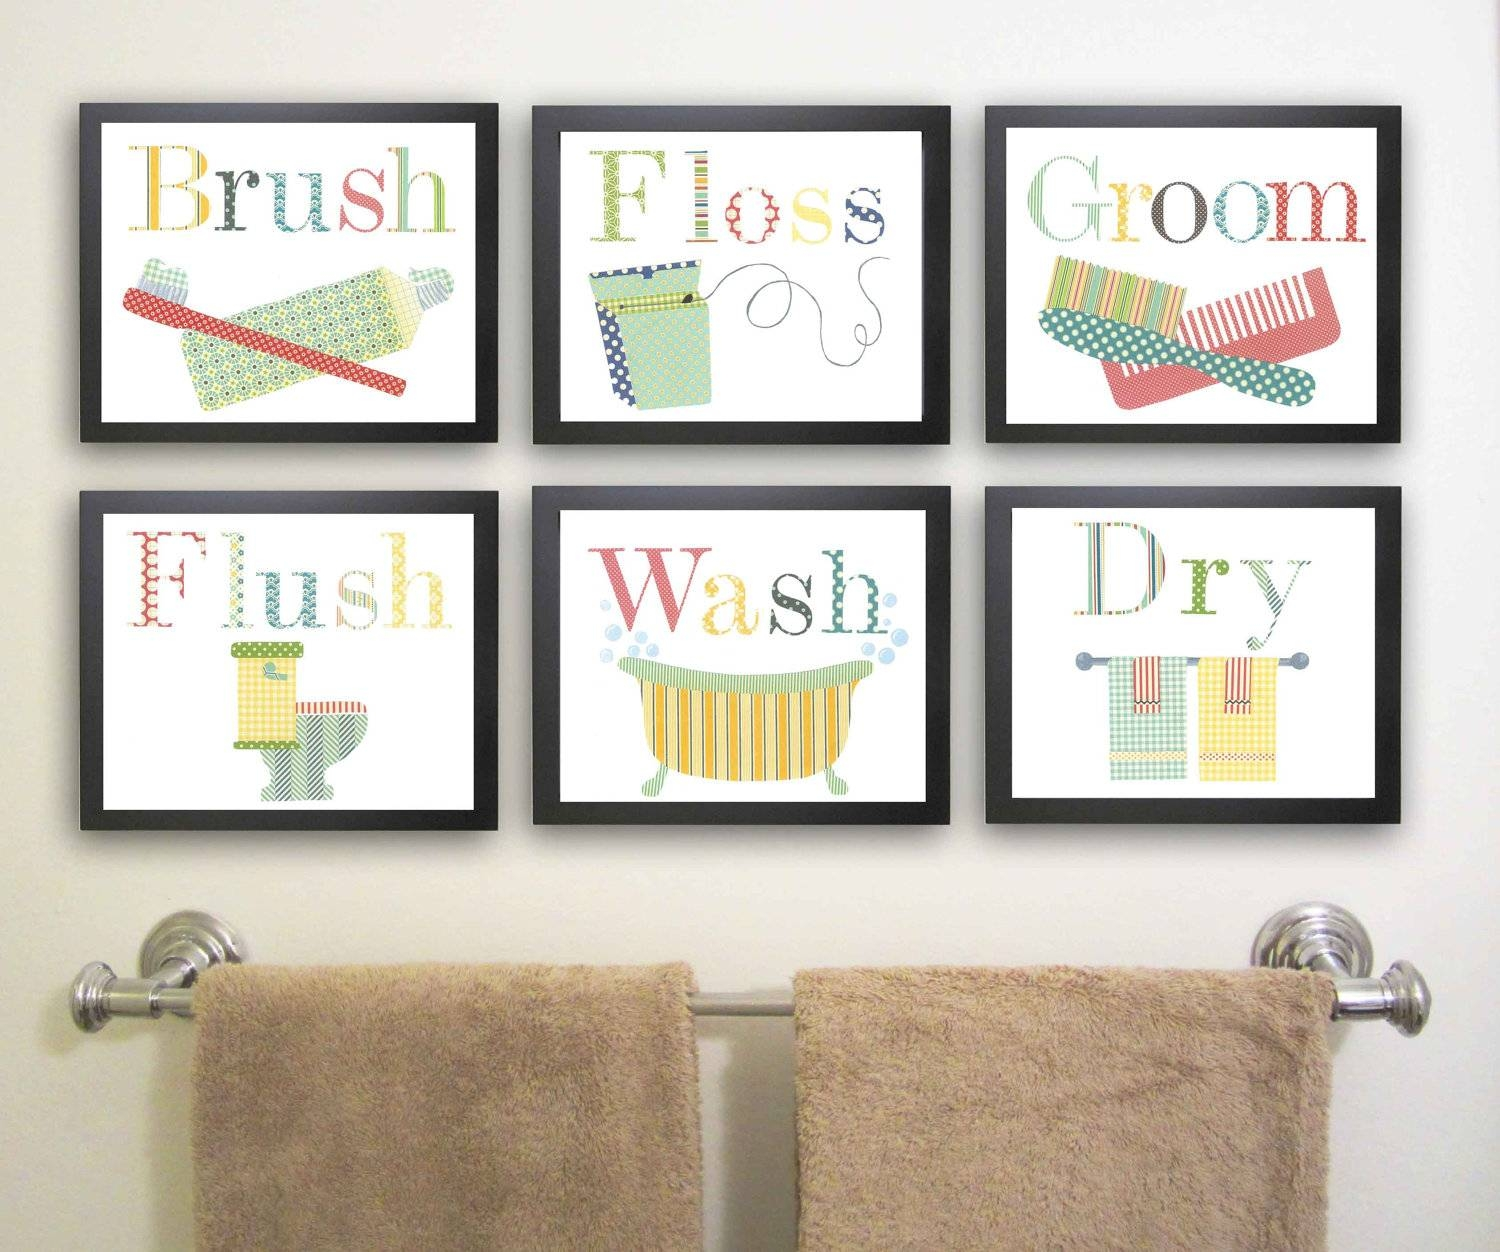 Wall Art Design Ideas: Wash Art For Bathroom Walls Brush Sample Regarding Most Recently Released Bath Wall Art (View 16 of 16)